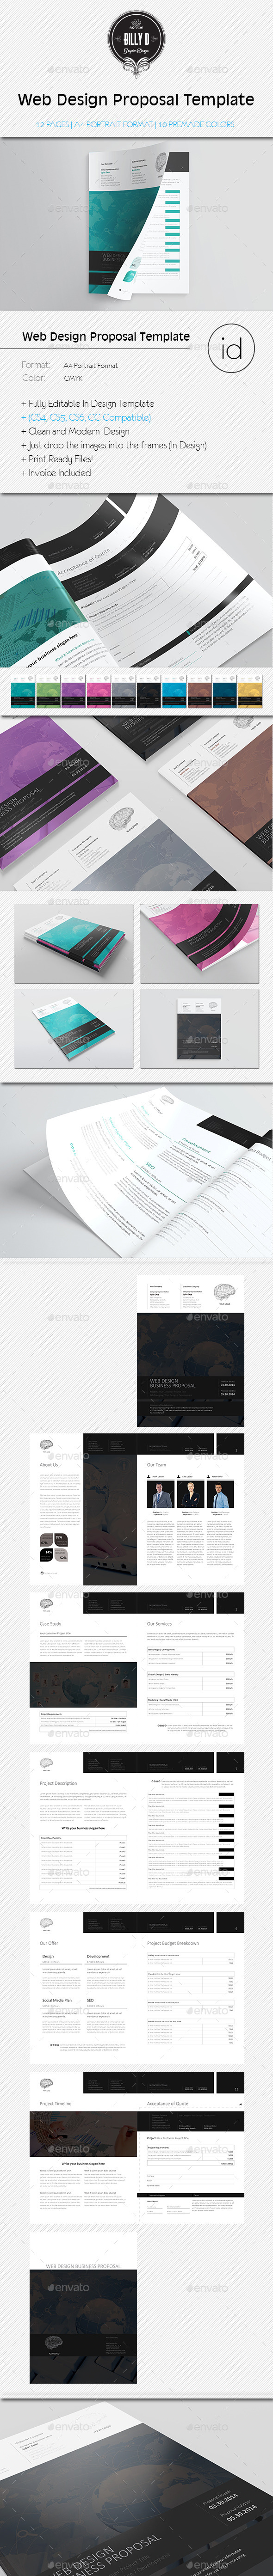 GraphicRiver Web Design Proposal Template 10067856